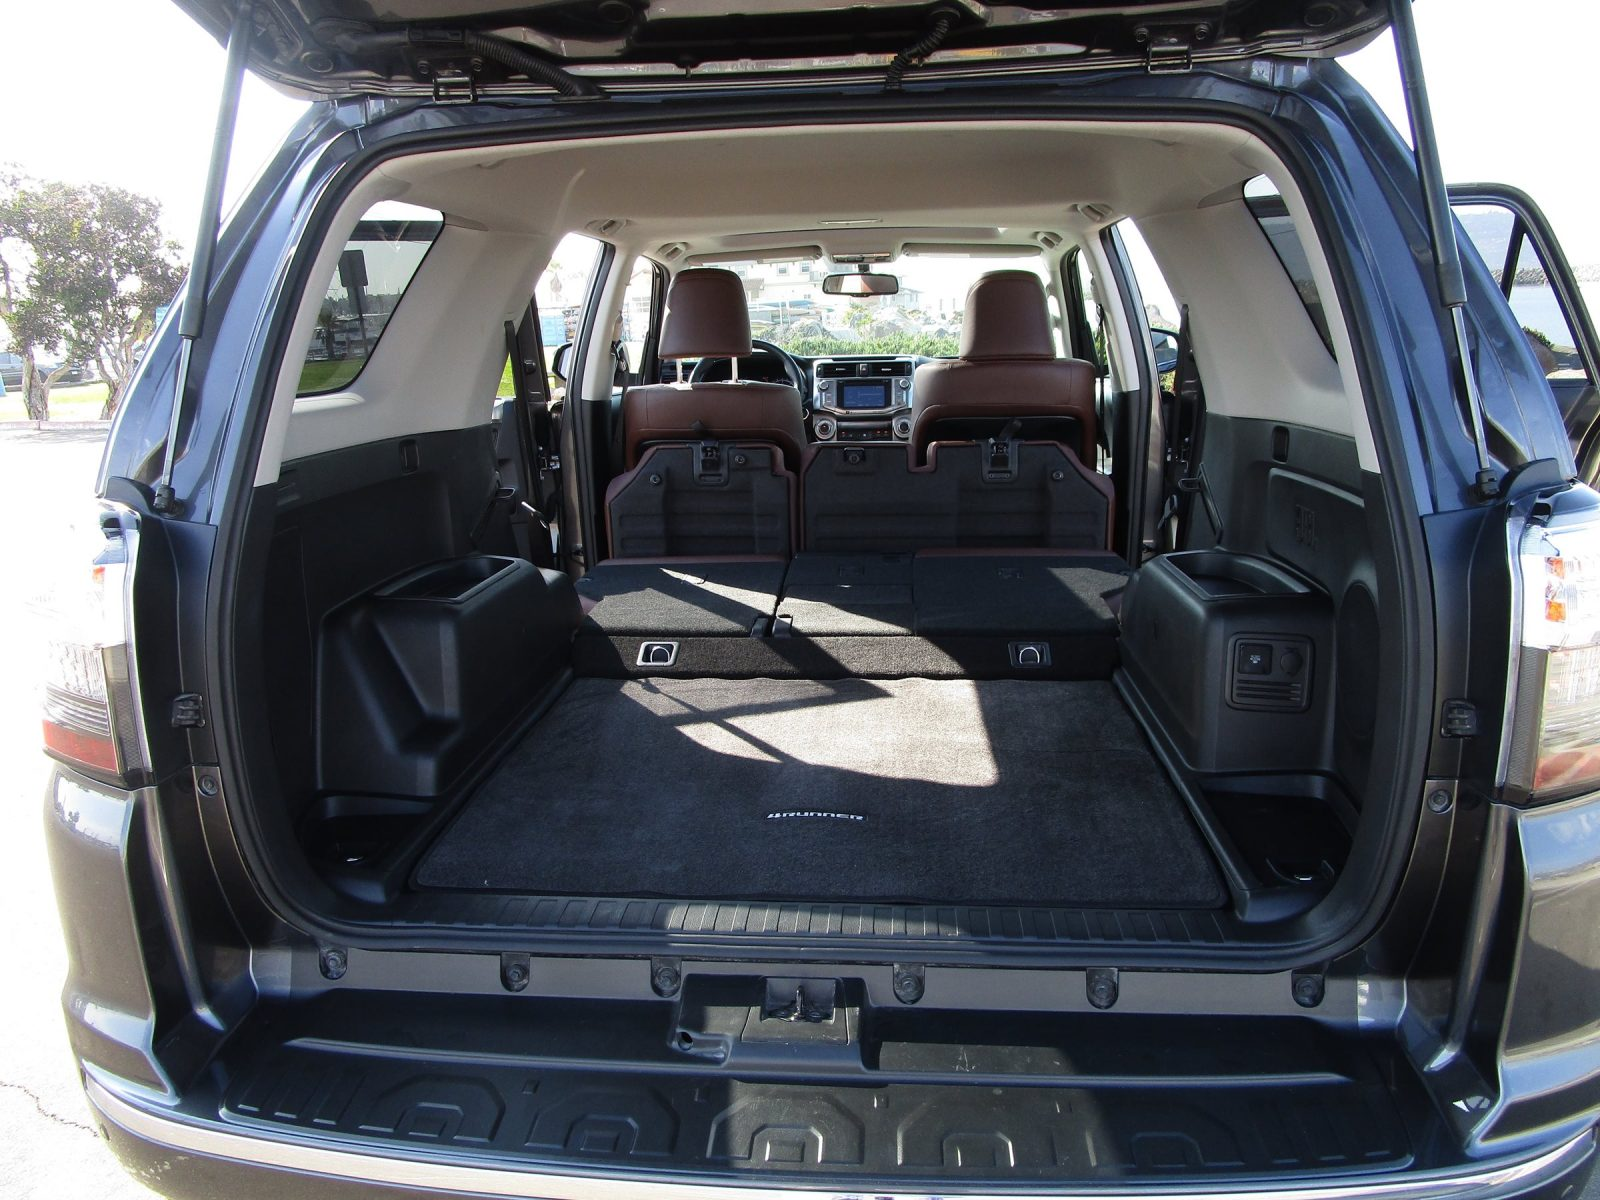 2017 toyota 4runner limited interior 7. Black Bedroom Furniture Sets. Home Design Ideas